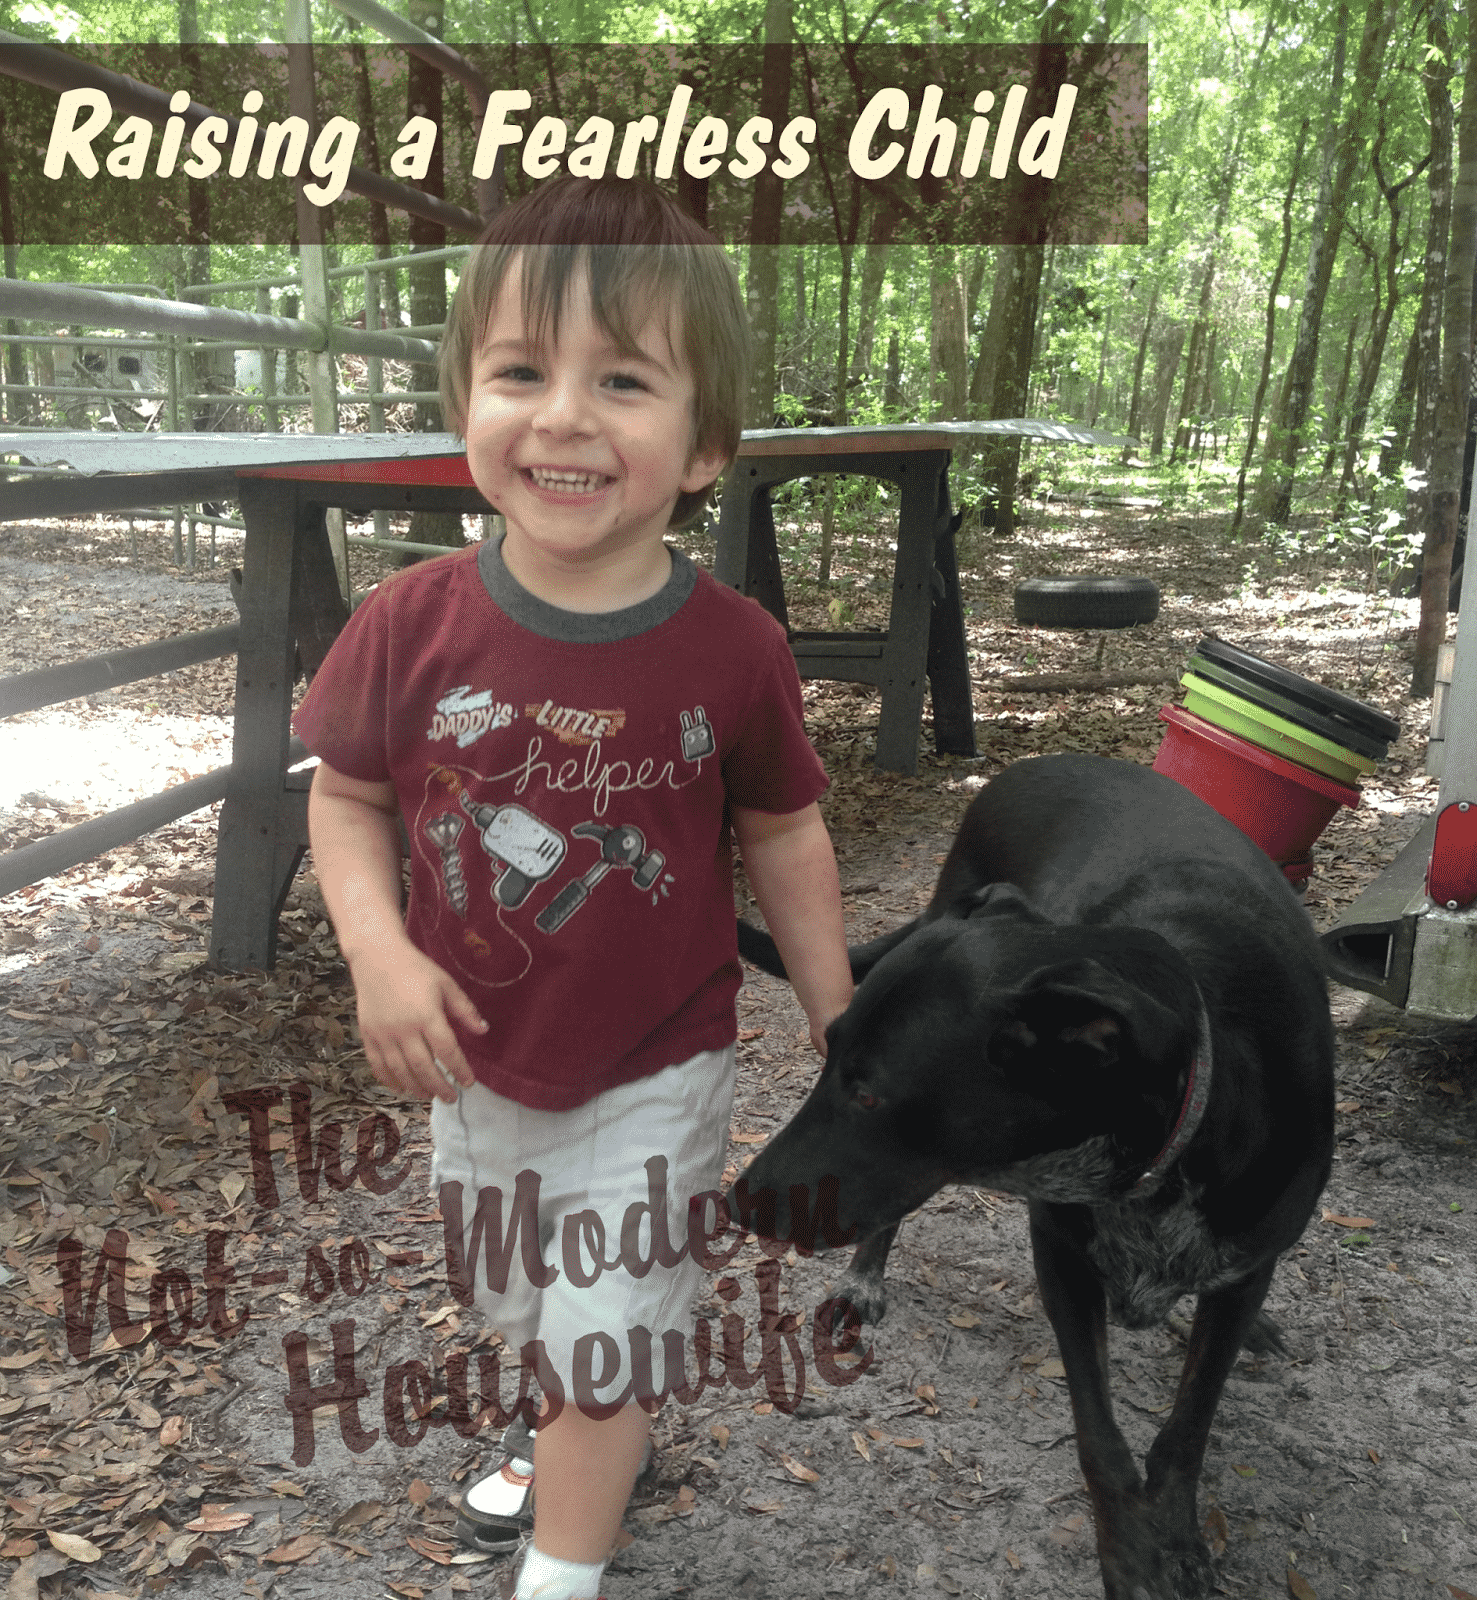 Raising a Fearless Child